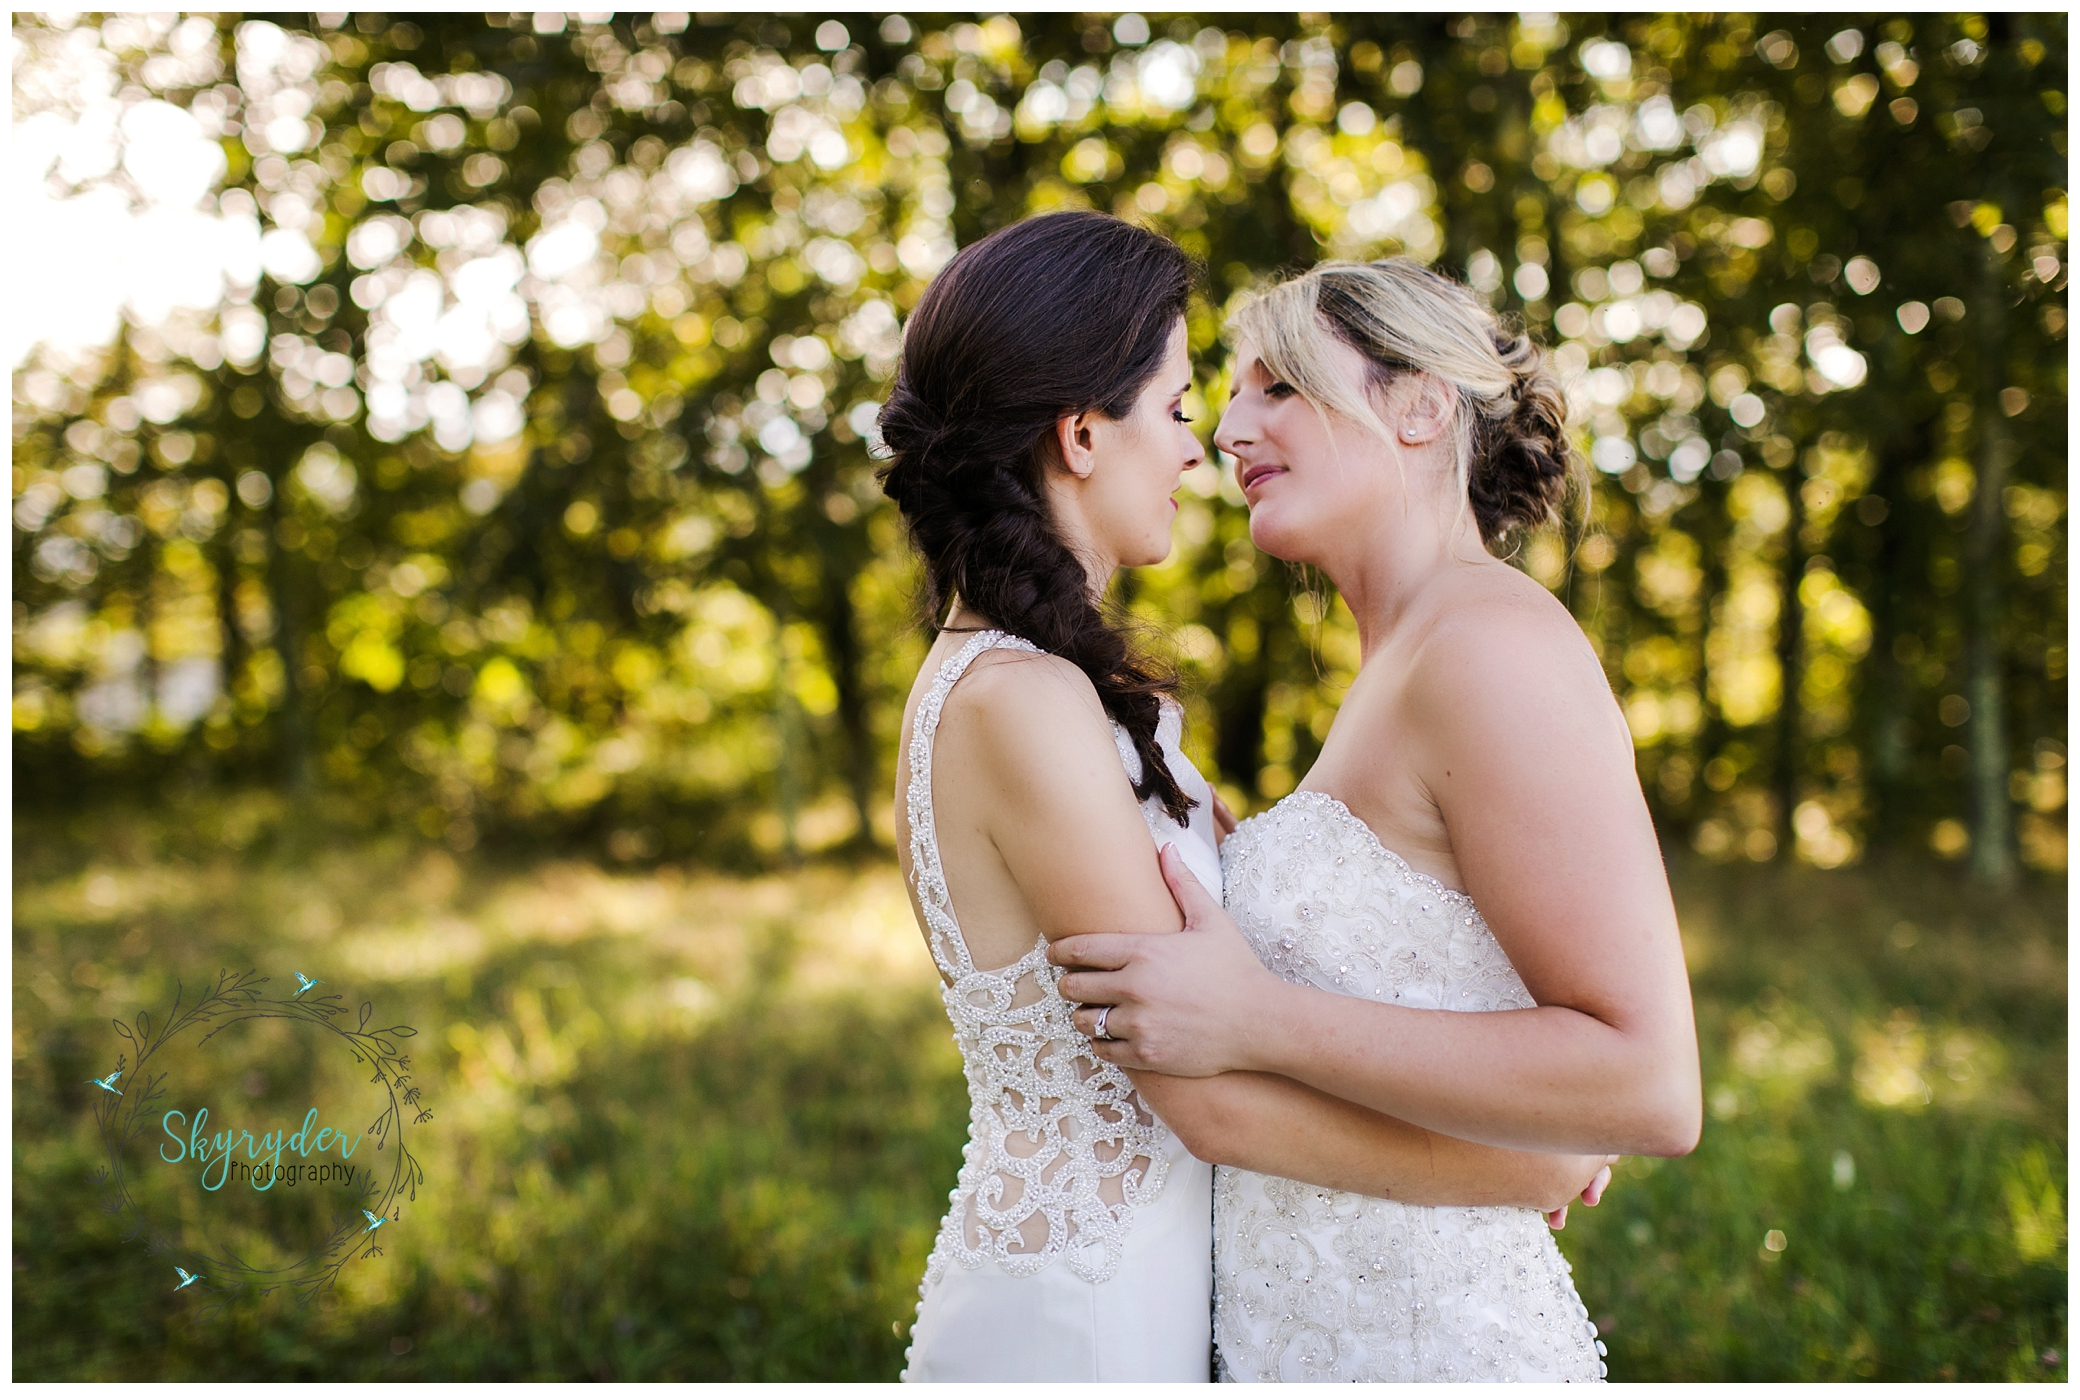 Danielle + Lindsay | Mountain Lake Wedding Photographer